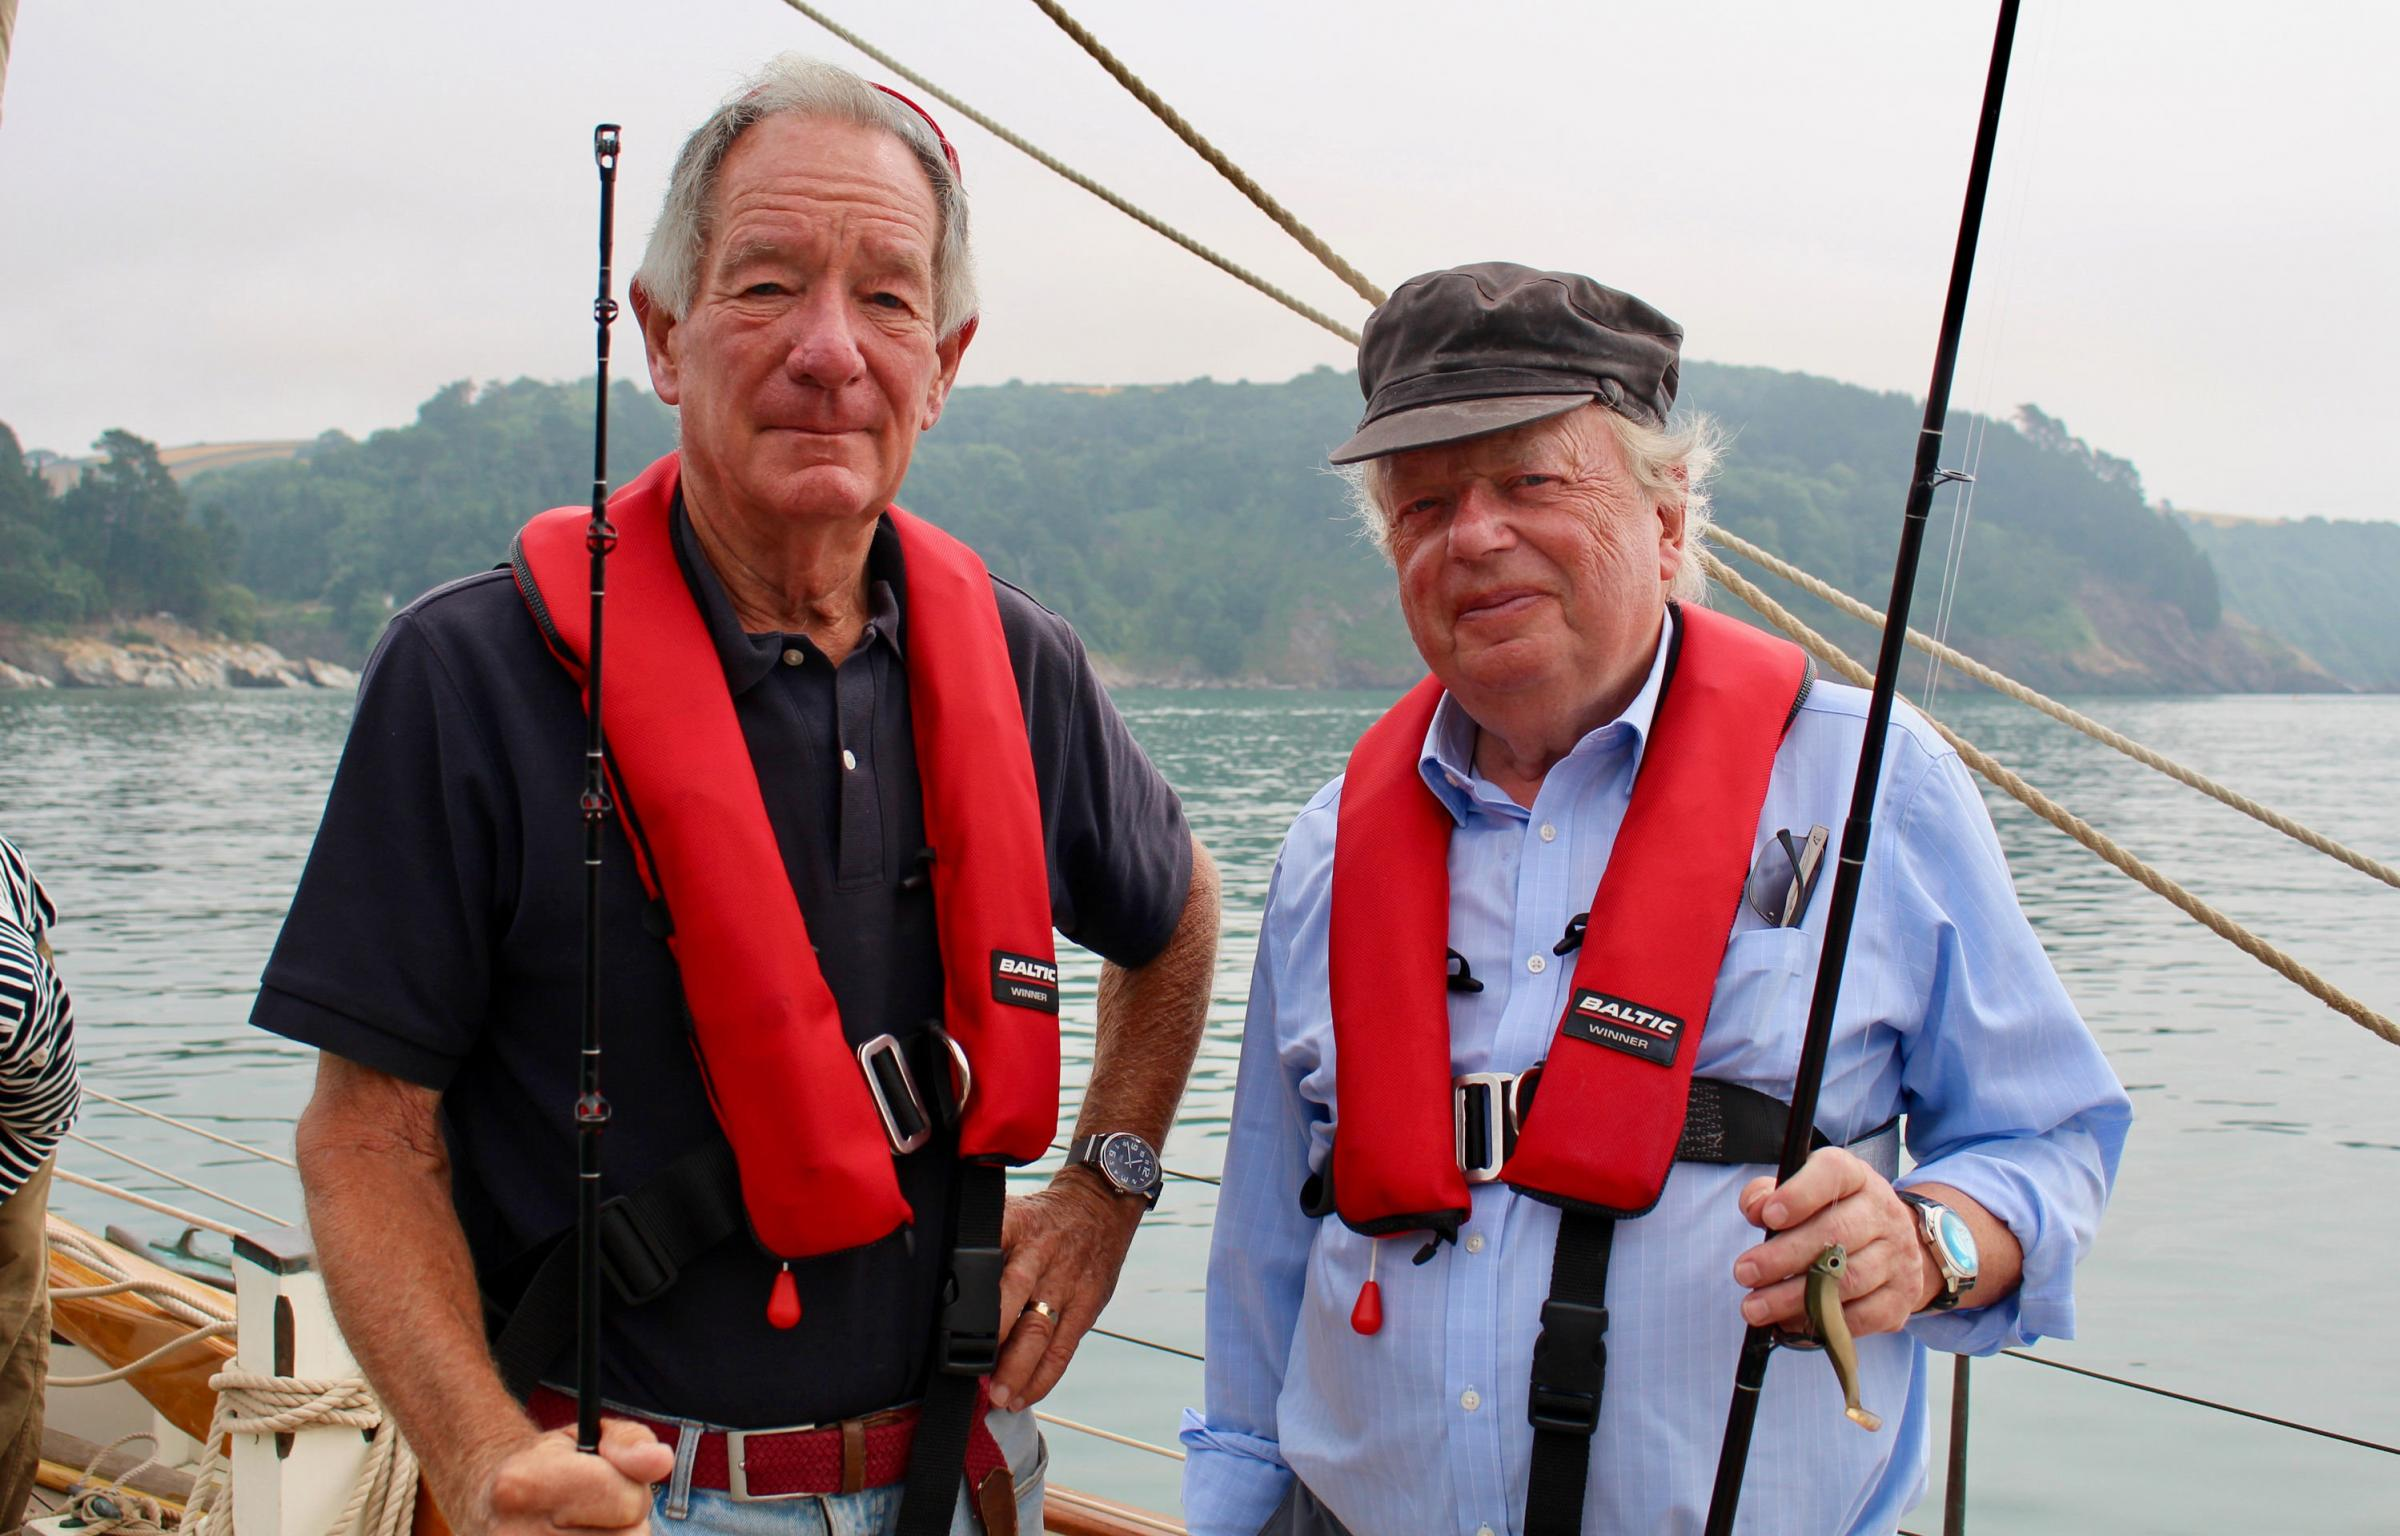 Michael Buerk and John Sergeant embark on the third leg of their voyage